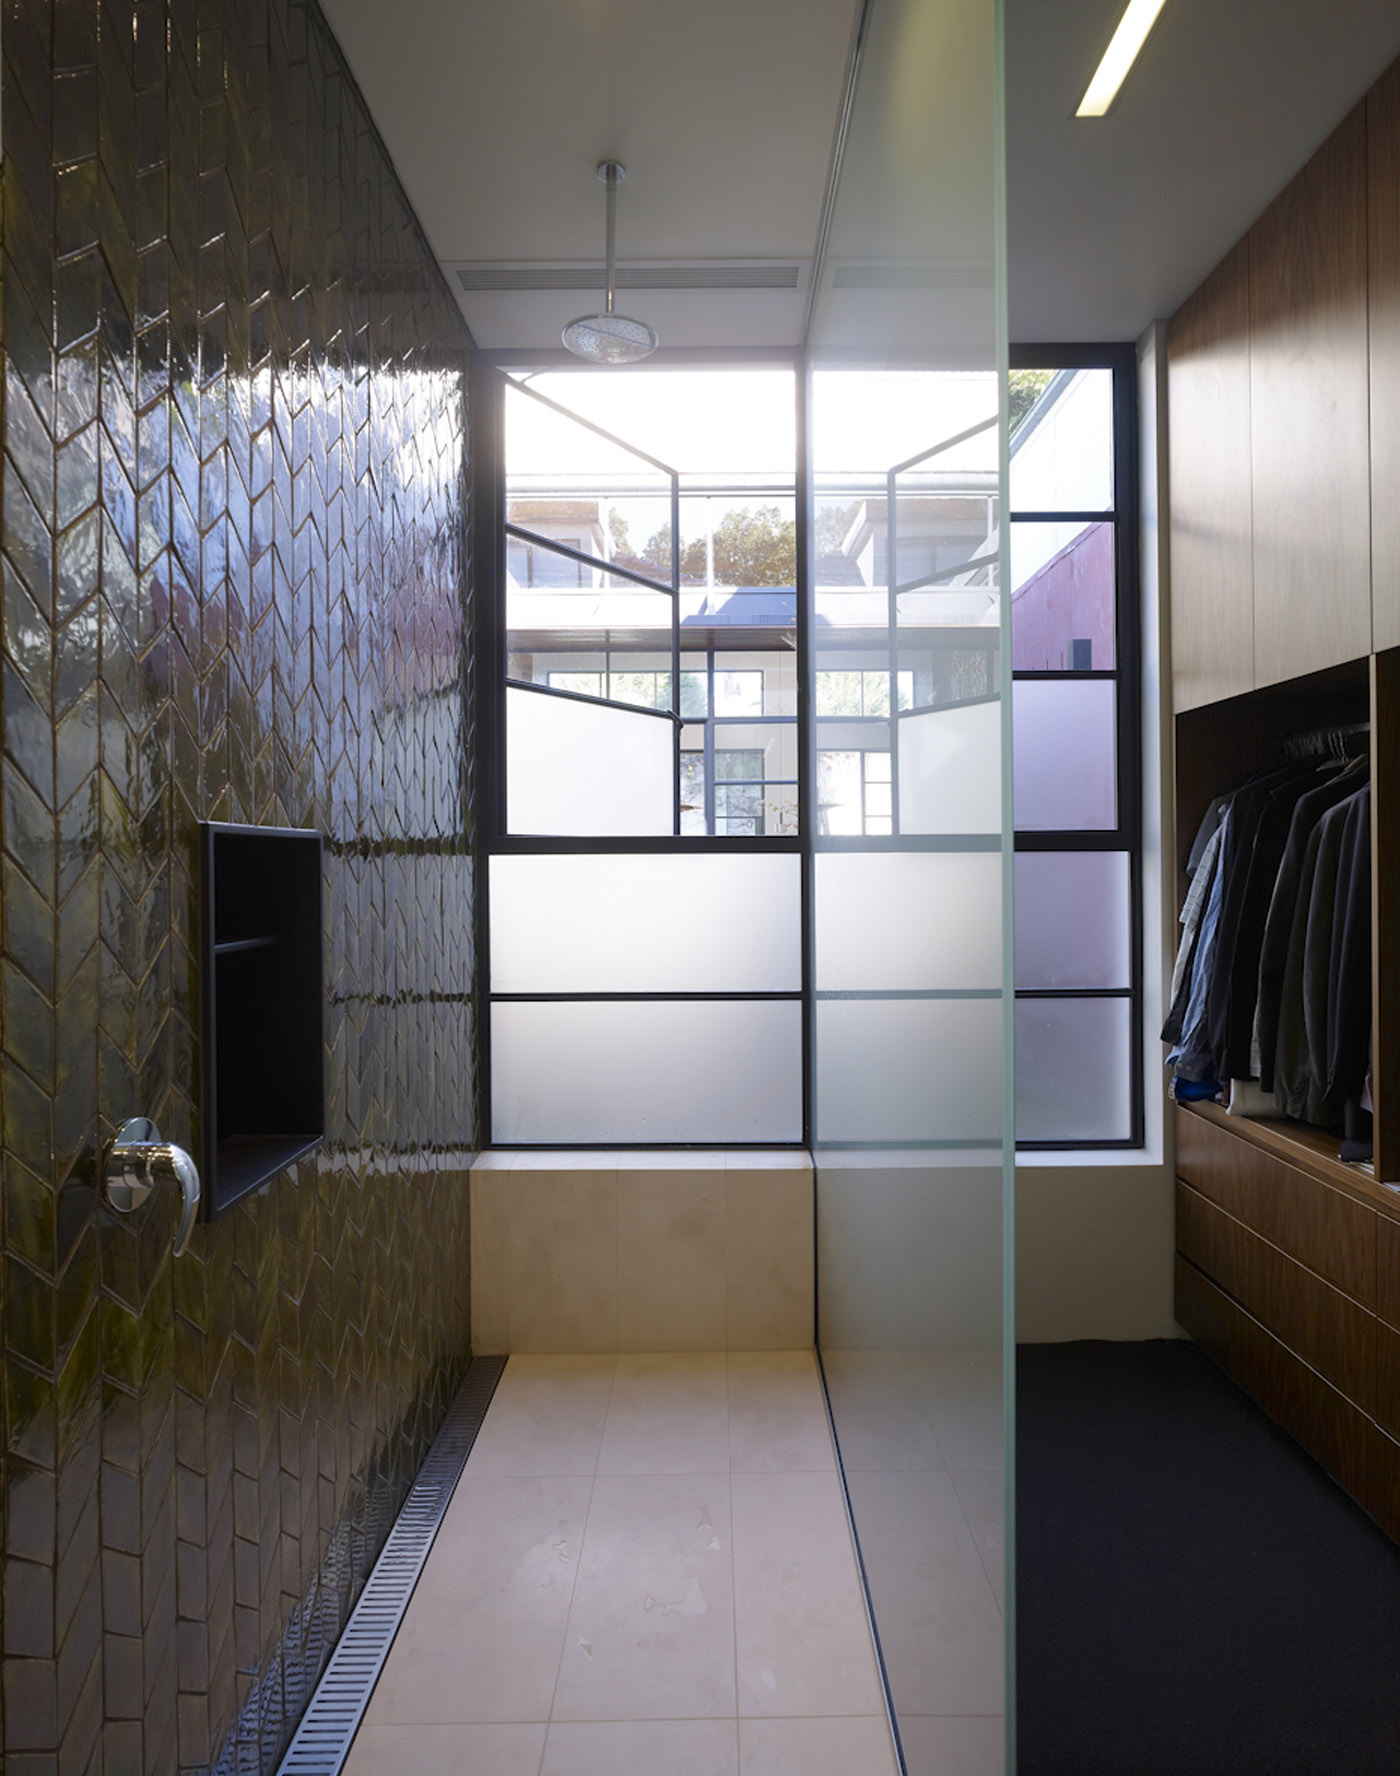 Smee Schoff House by award winning Sydney residential architecture firm Sam Crawford Architects. Light-filled bathroom and walk-in robe divided by frosted glass screen